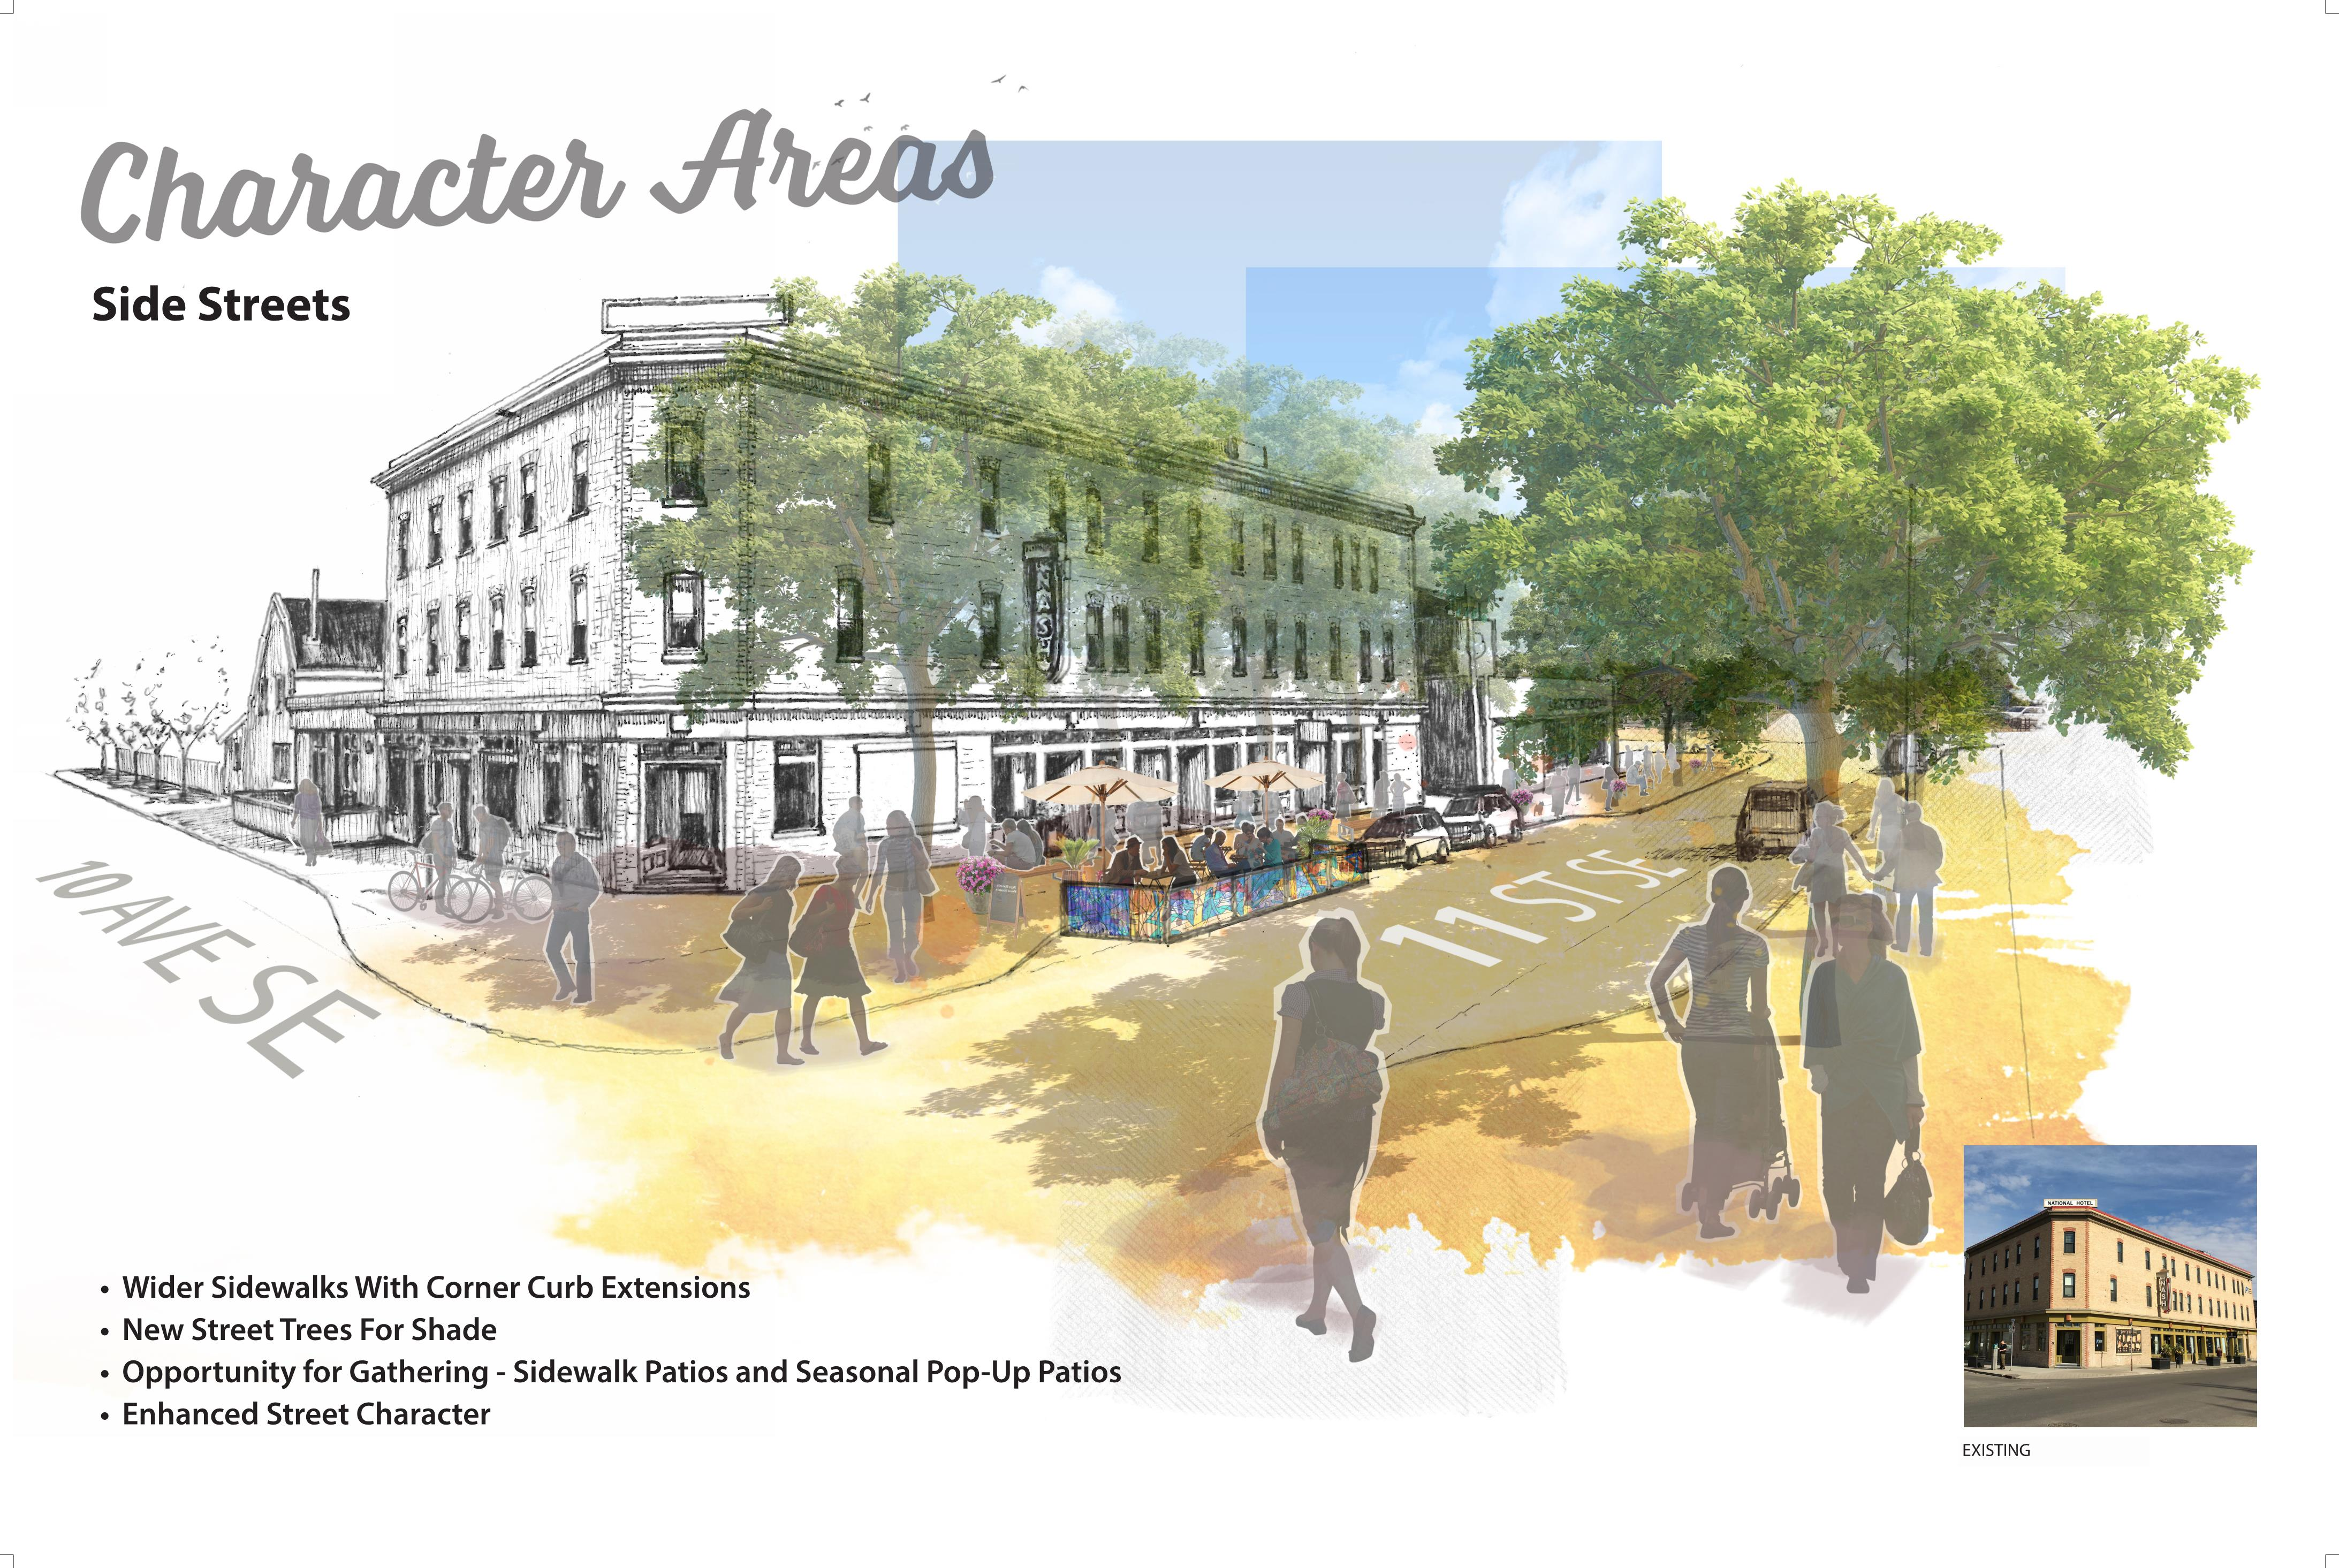 Rendering of side streets character areas